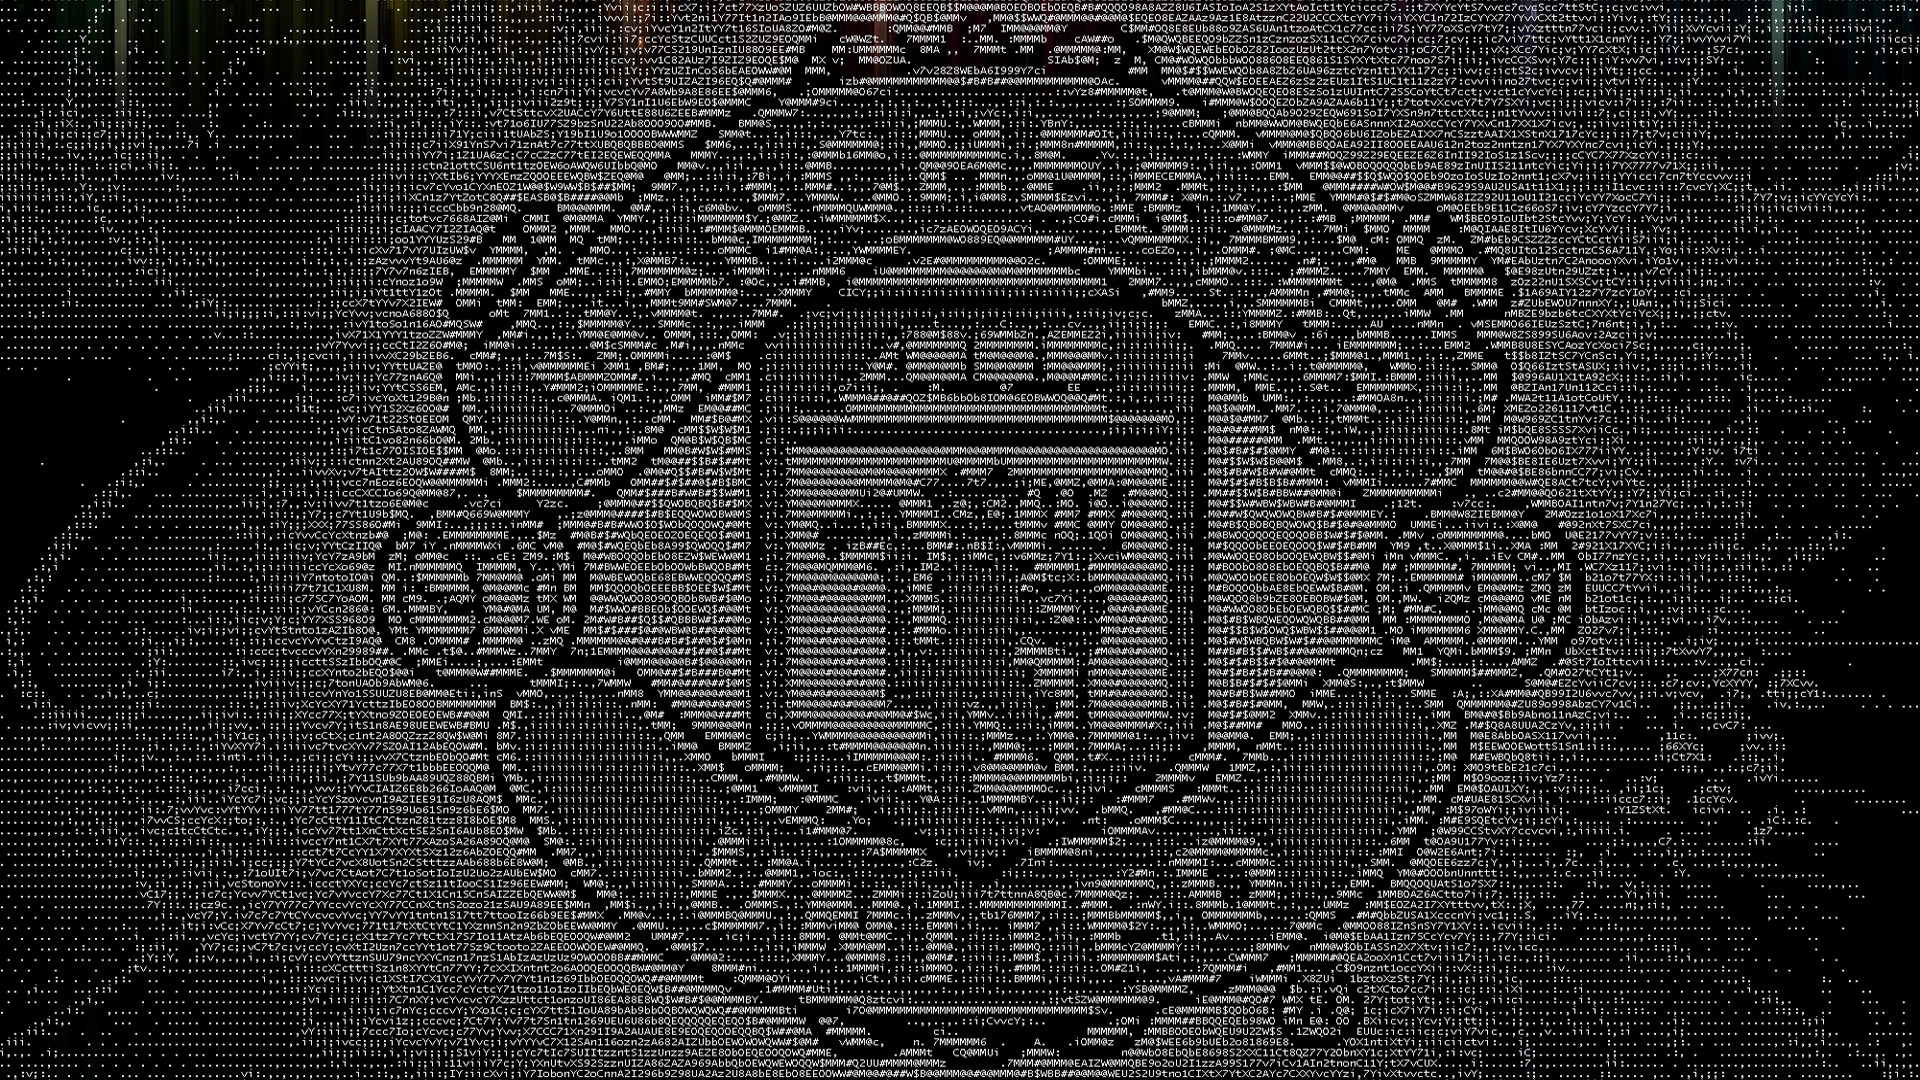 Manchester United Wallpaper Iphone X Manchester United Wallpaper 3d 2018 62 Images